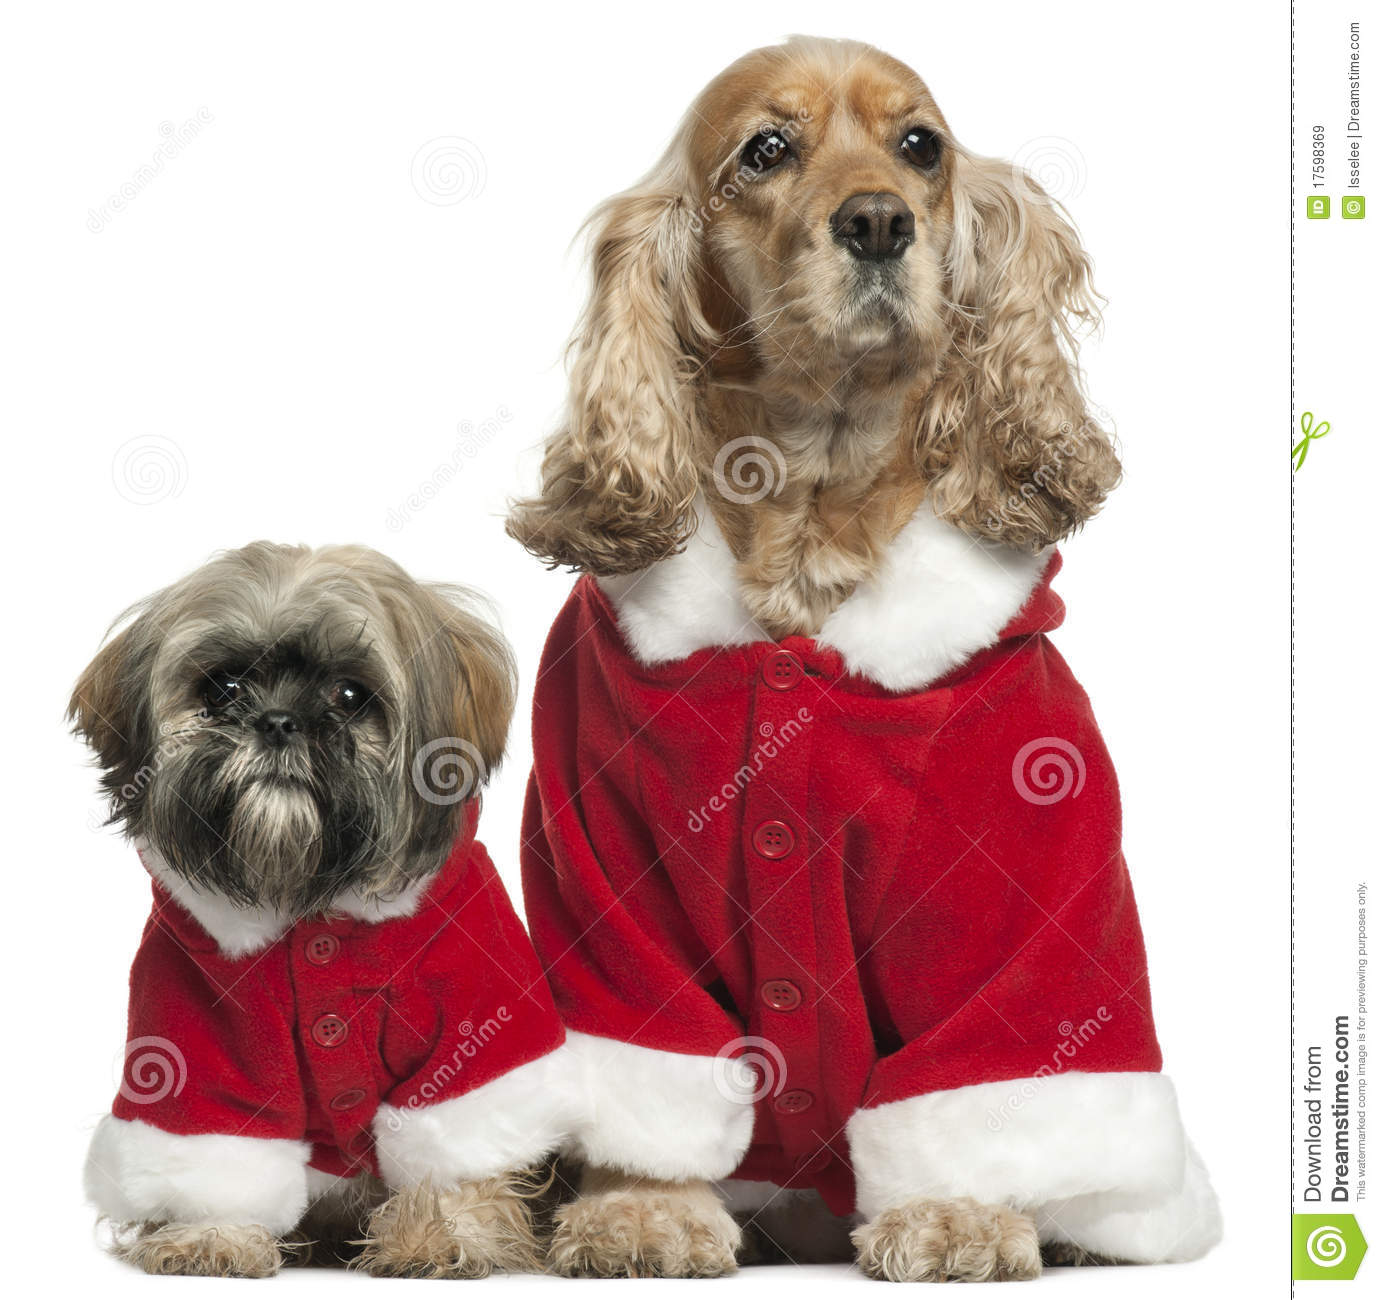 cocker spaniel and shih tzu english cocker spaniel and shih tzu in santa stock image 2350